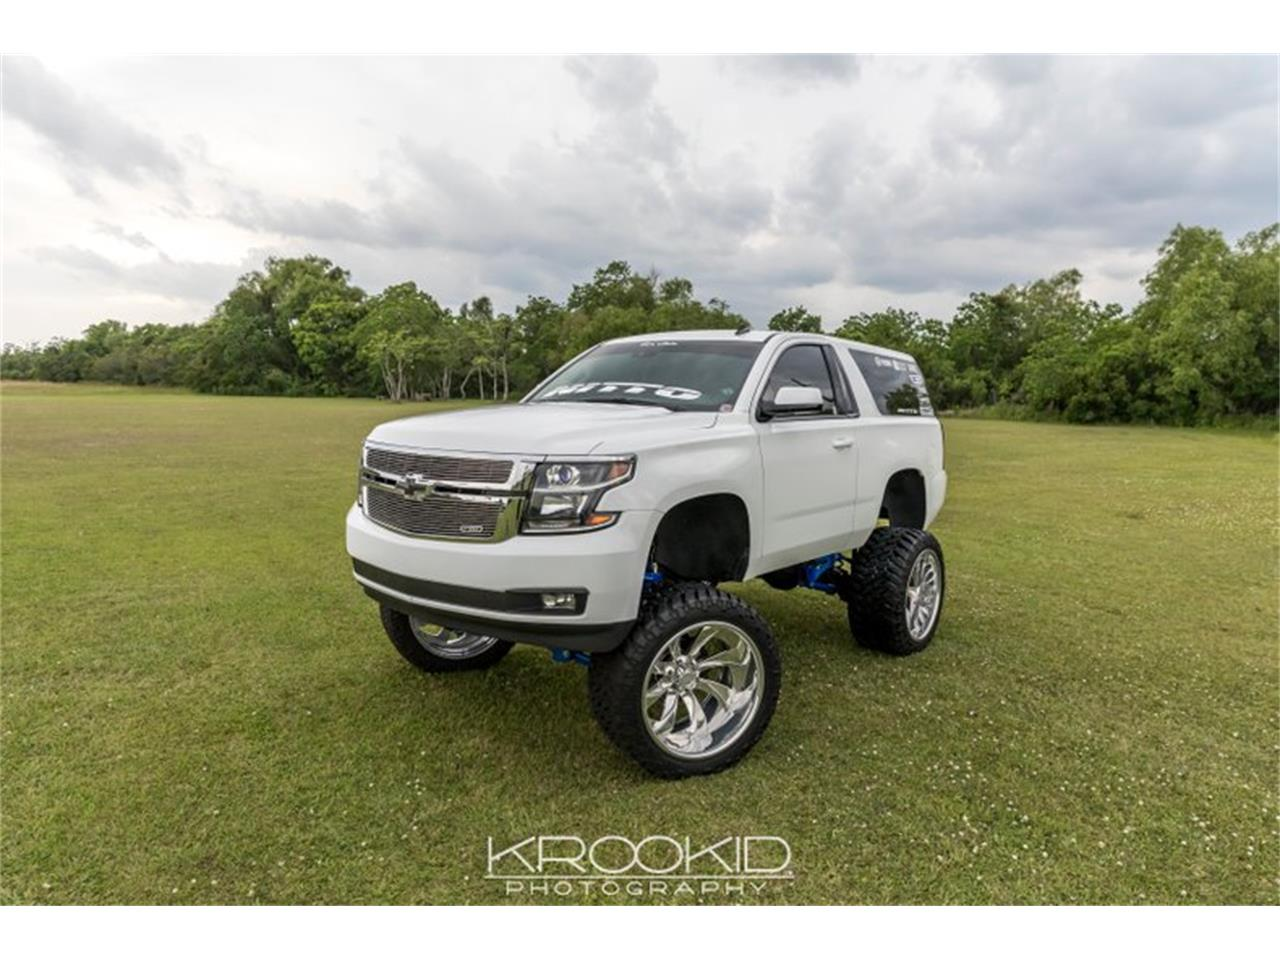 2015 Chevrolet Suburban for sale in Collierville, TN – photo 33